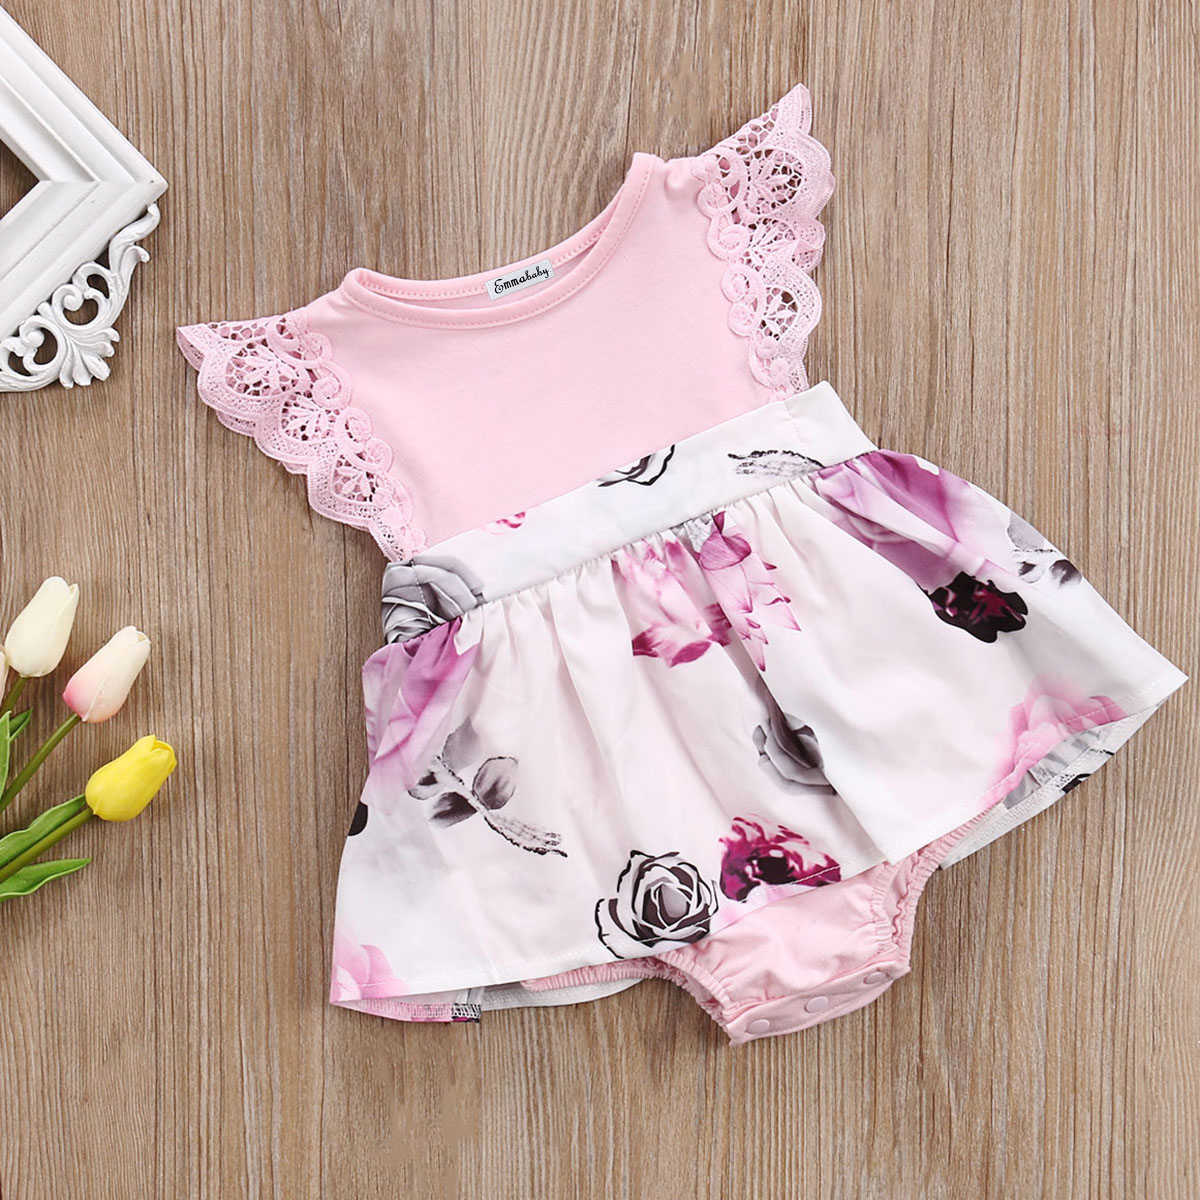 48b2b66c208 ... Cute Toddler Kids Baby Girls Sisters Matching Clothes Outfits Baby  Little Big Sisters Floral Tutu Rompers